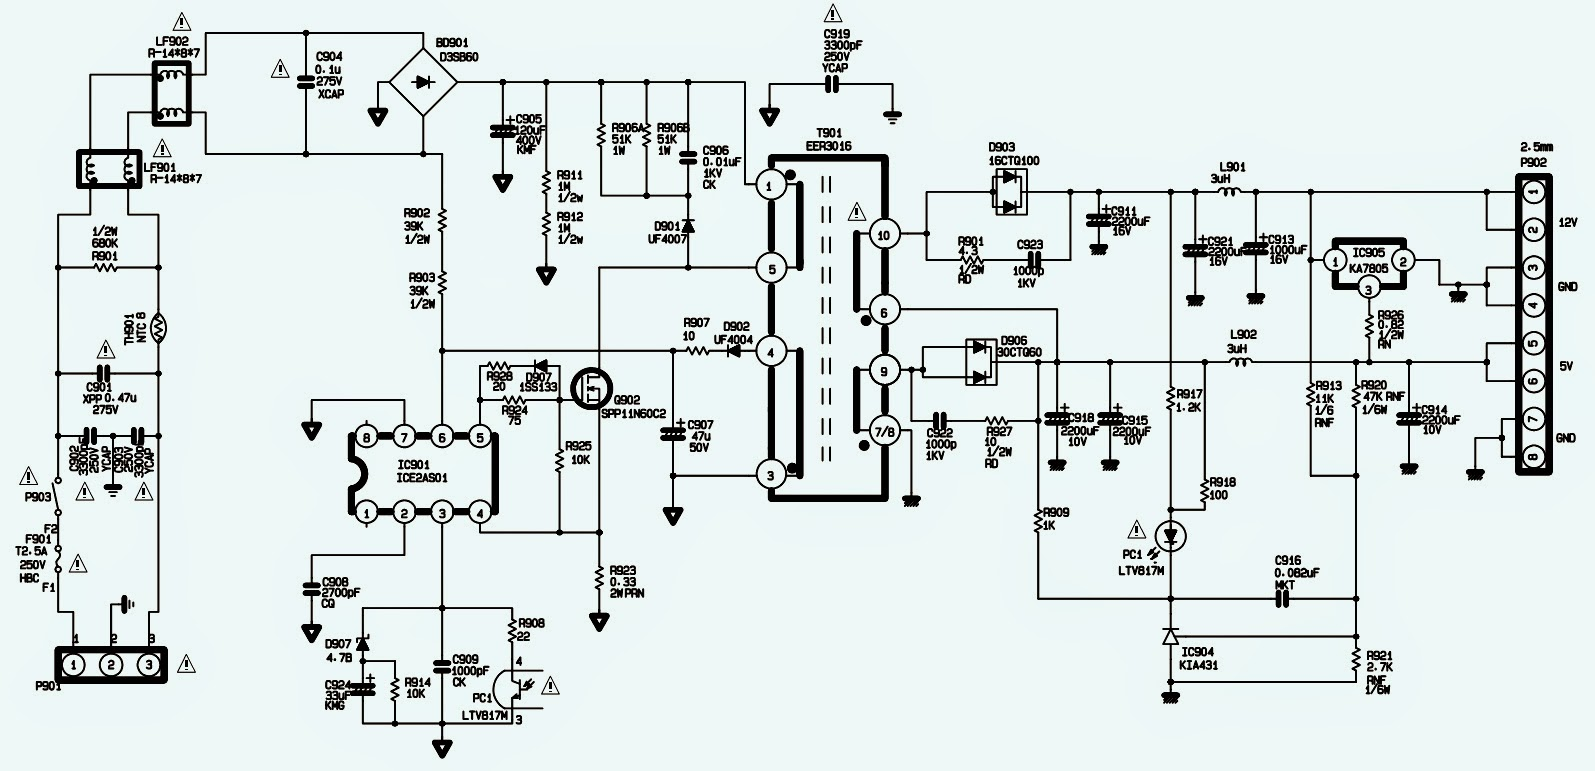 1.bmp wiring schematic diagram lg flatron l1810b monitor smps schematic monitor wiring diagram for cat 320l excavator at couponss.co